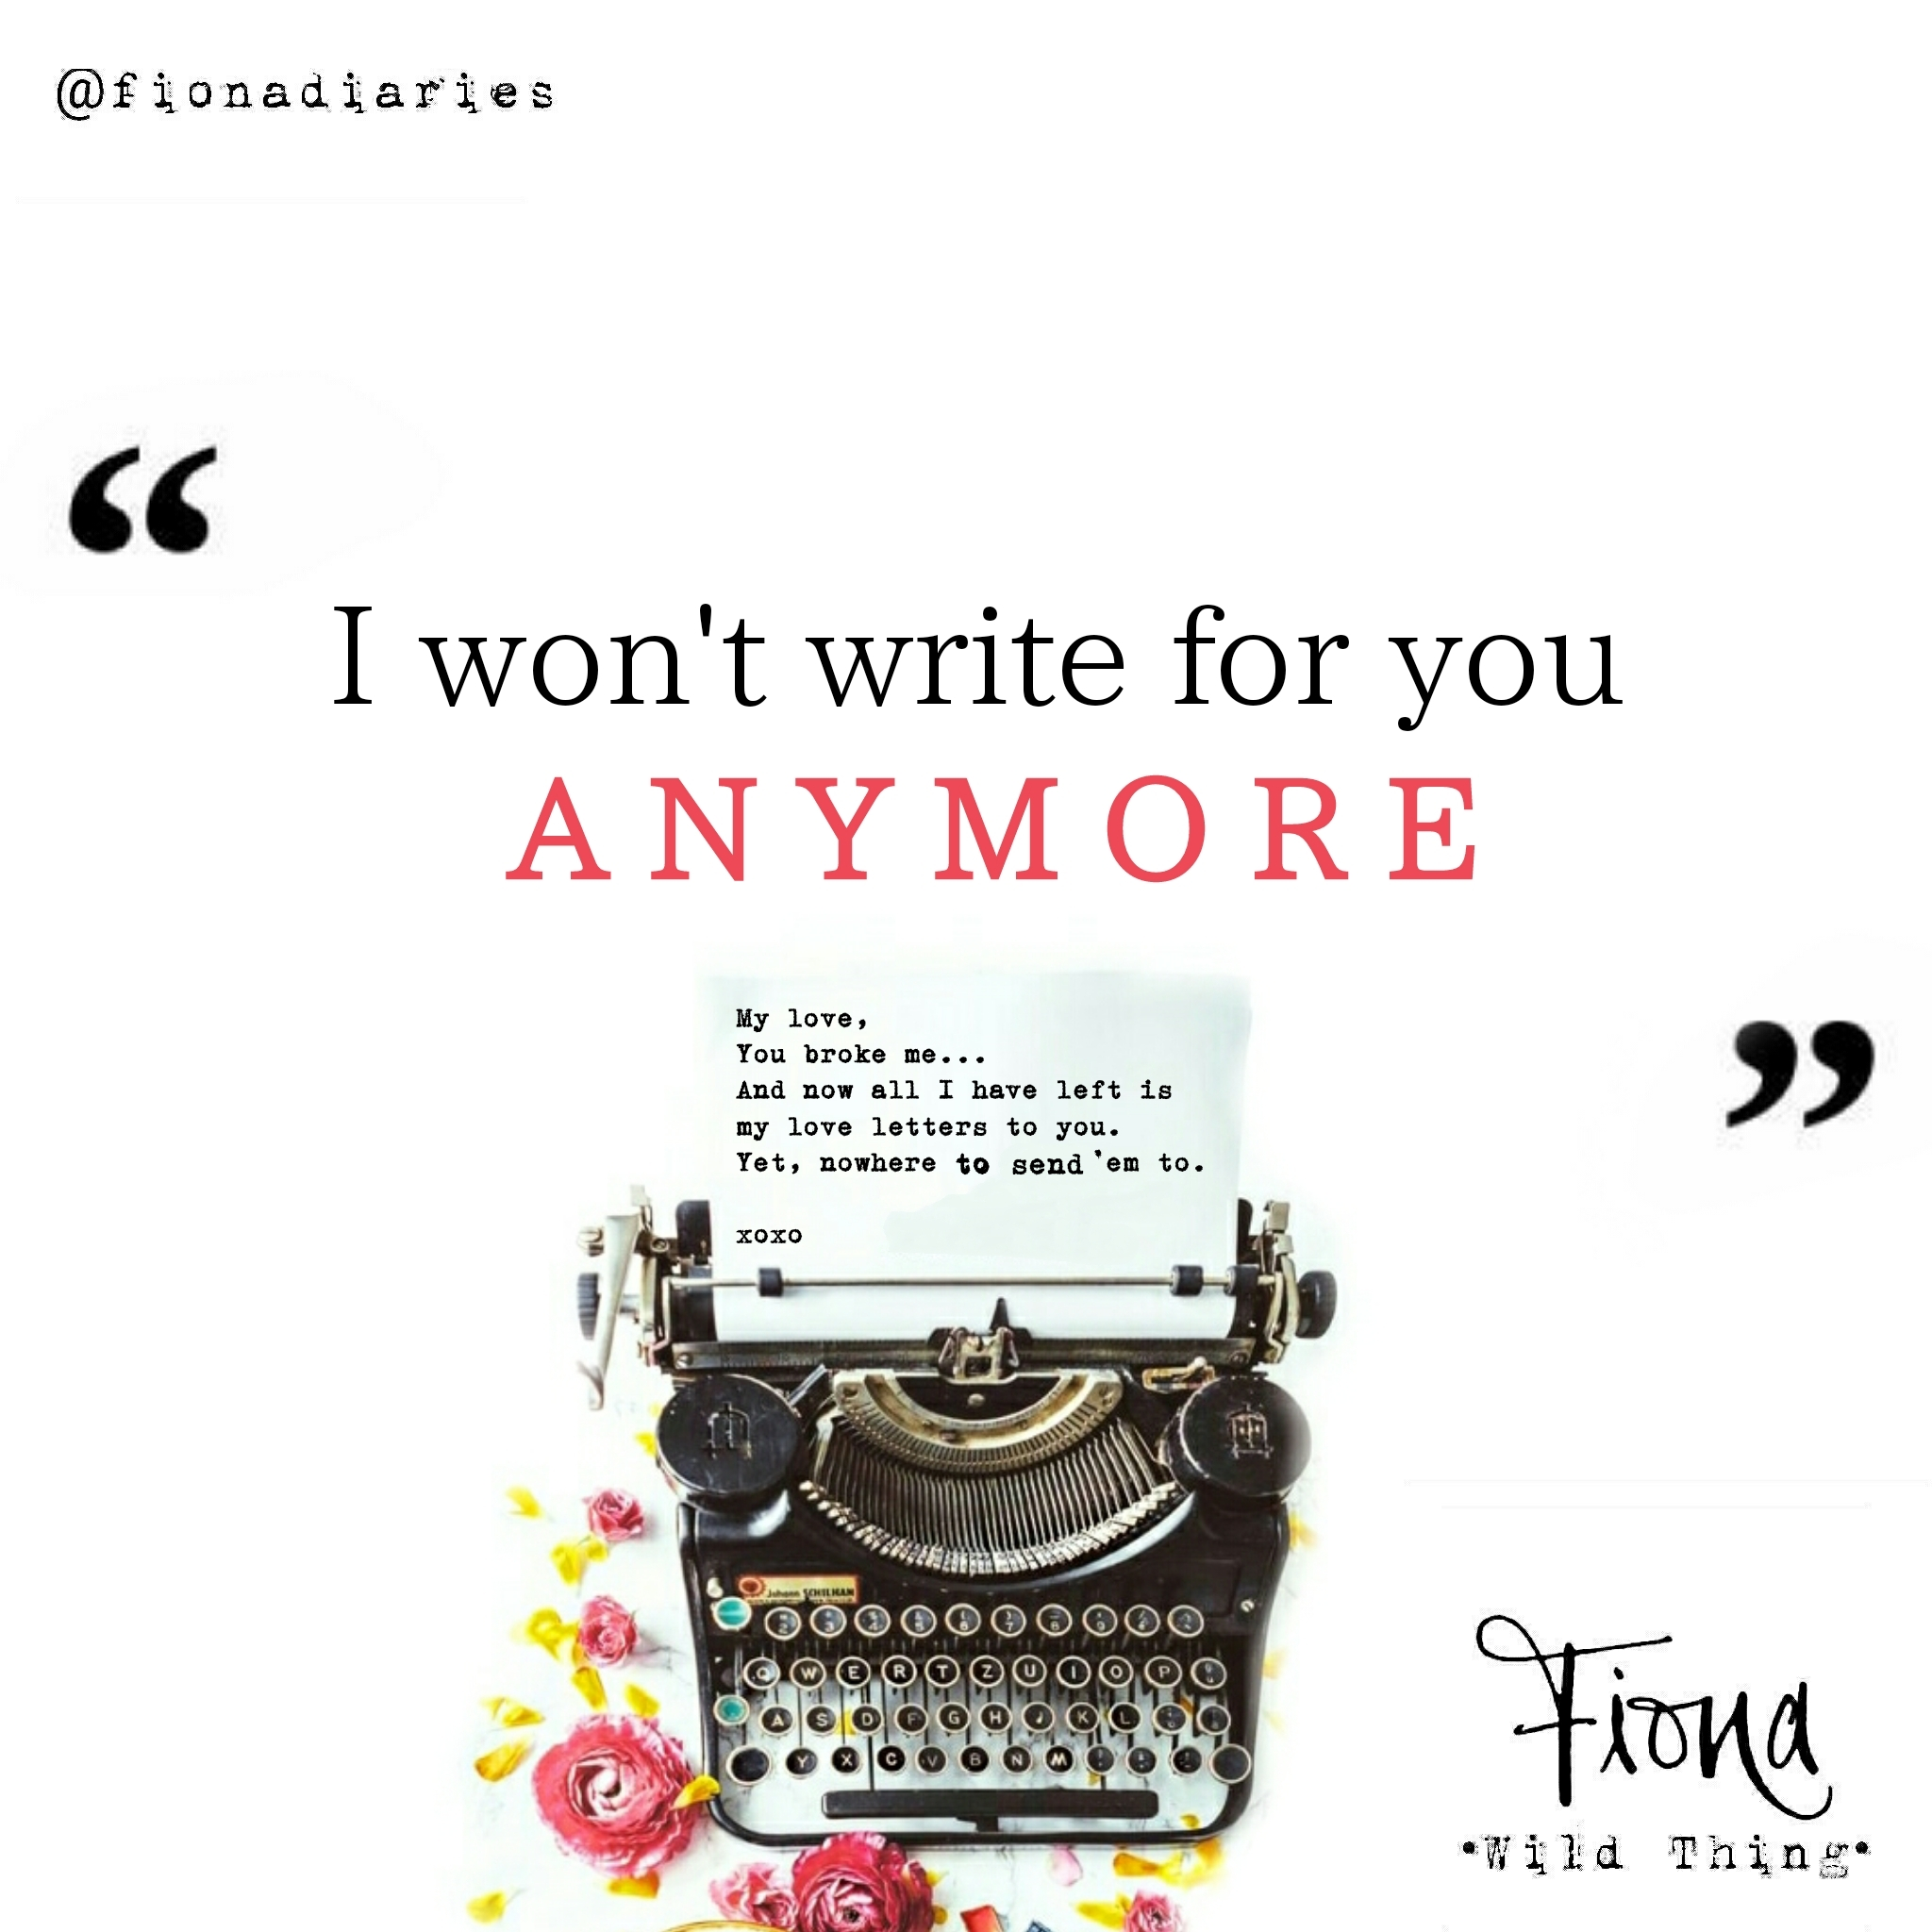 I won't write for you anymore